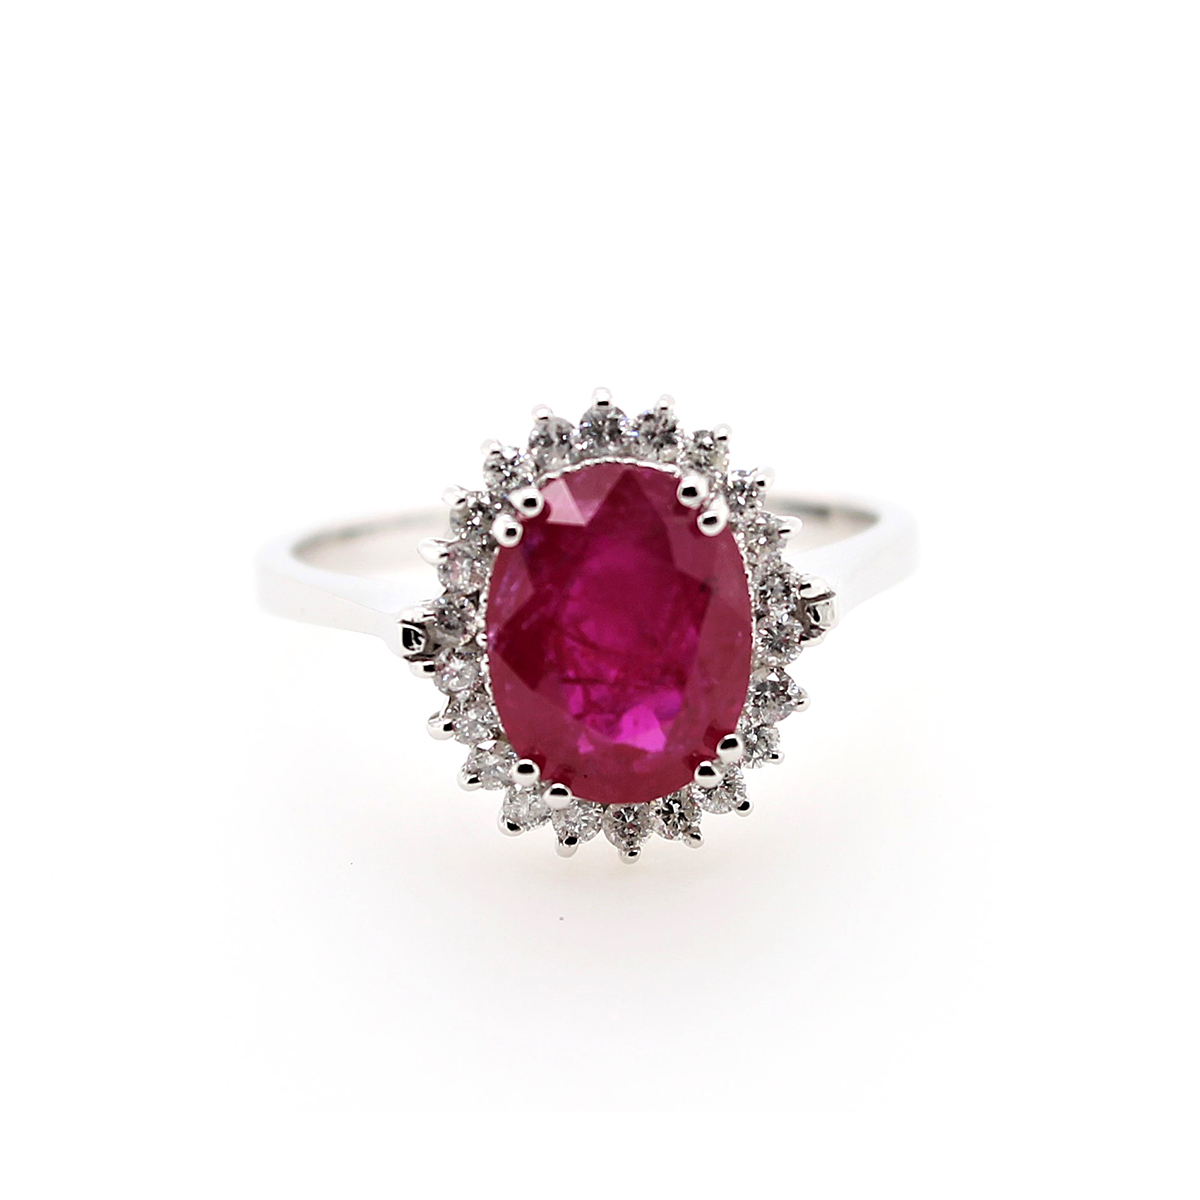 14 Karat White Gold Oval Ruby and Diamond Ring